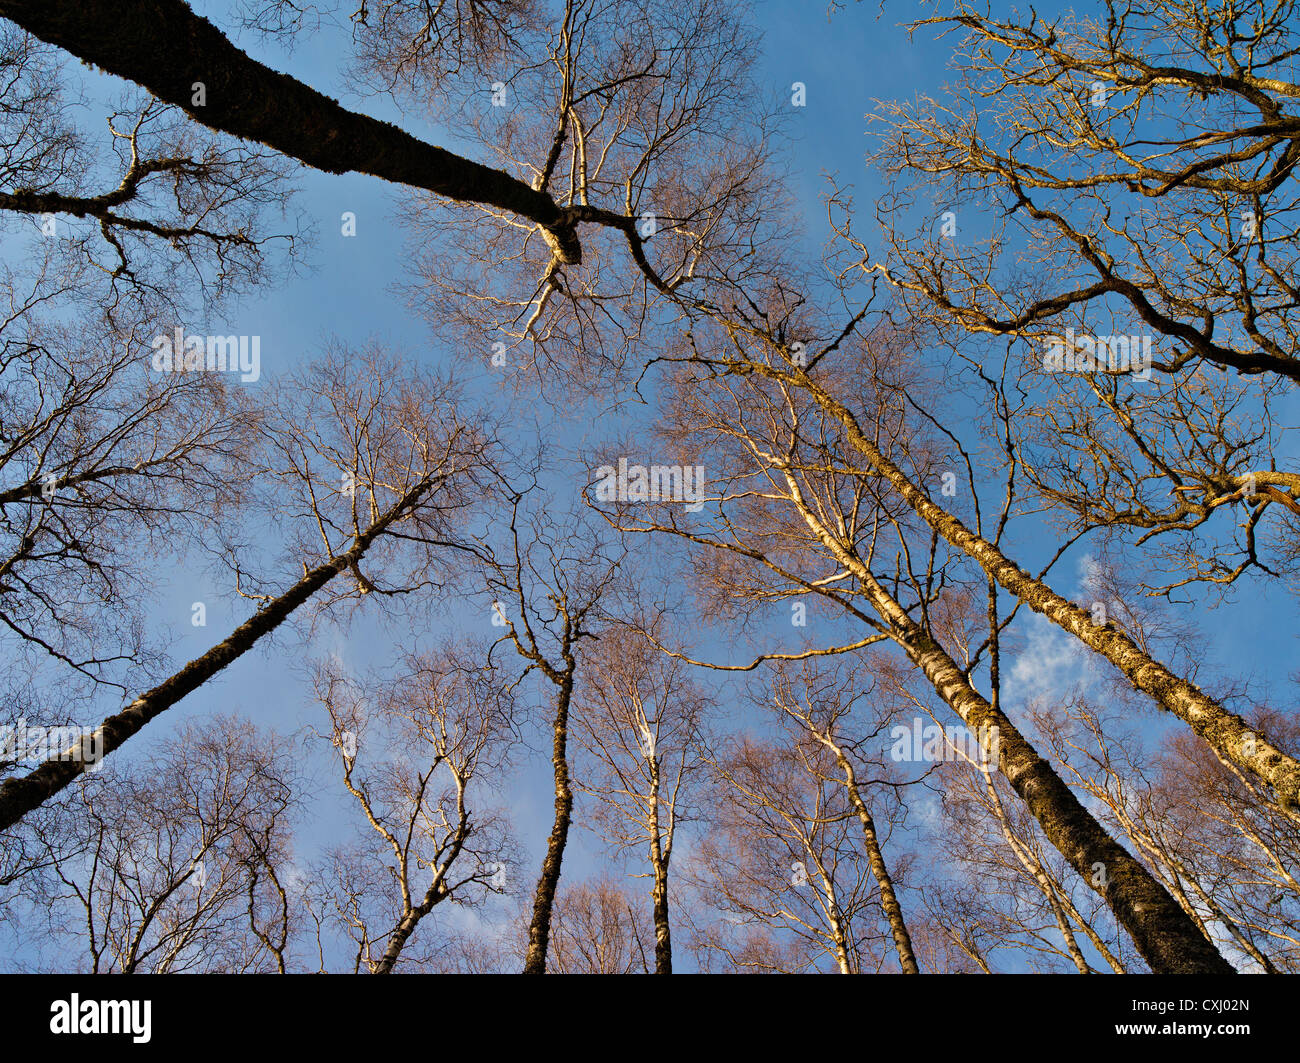 Looking up into the canopy of bare winter woodland near Killin, Perthshire Scotland Stock Photo